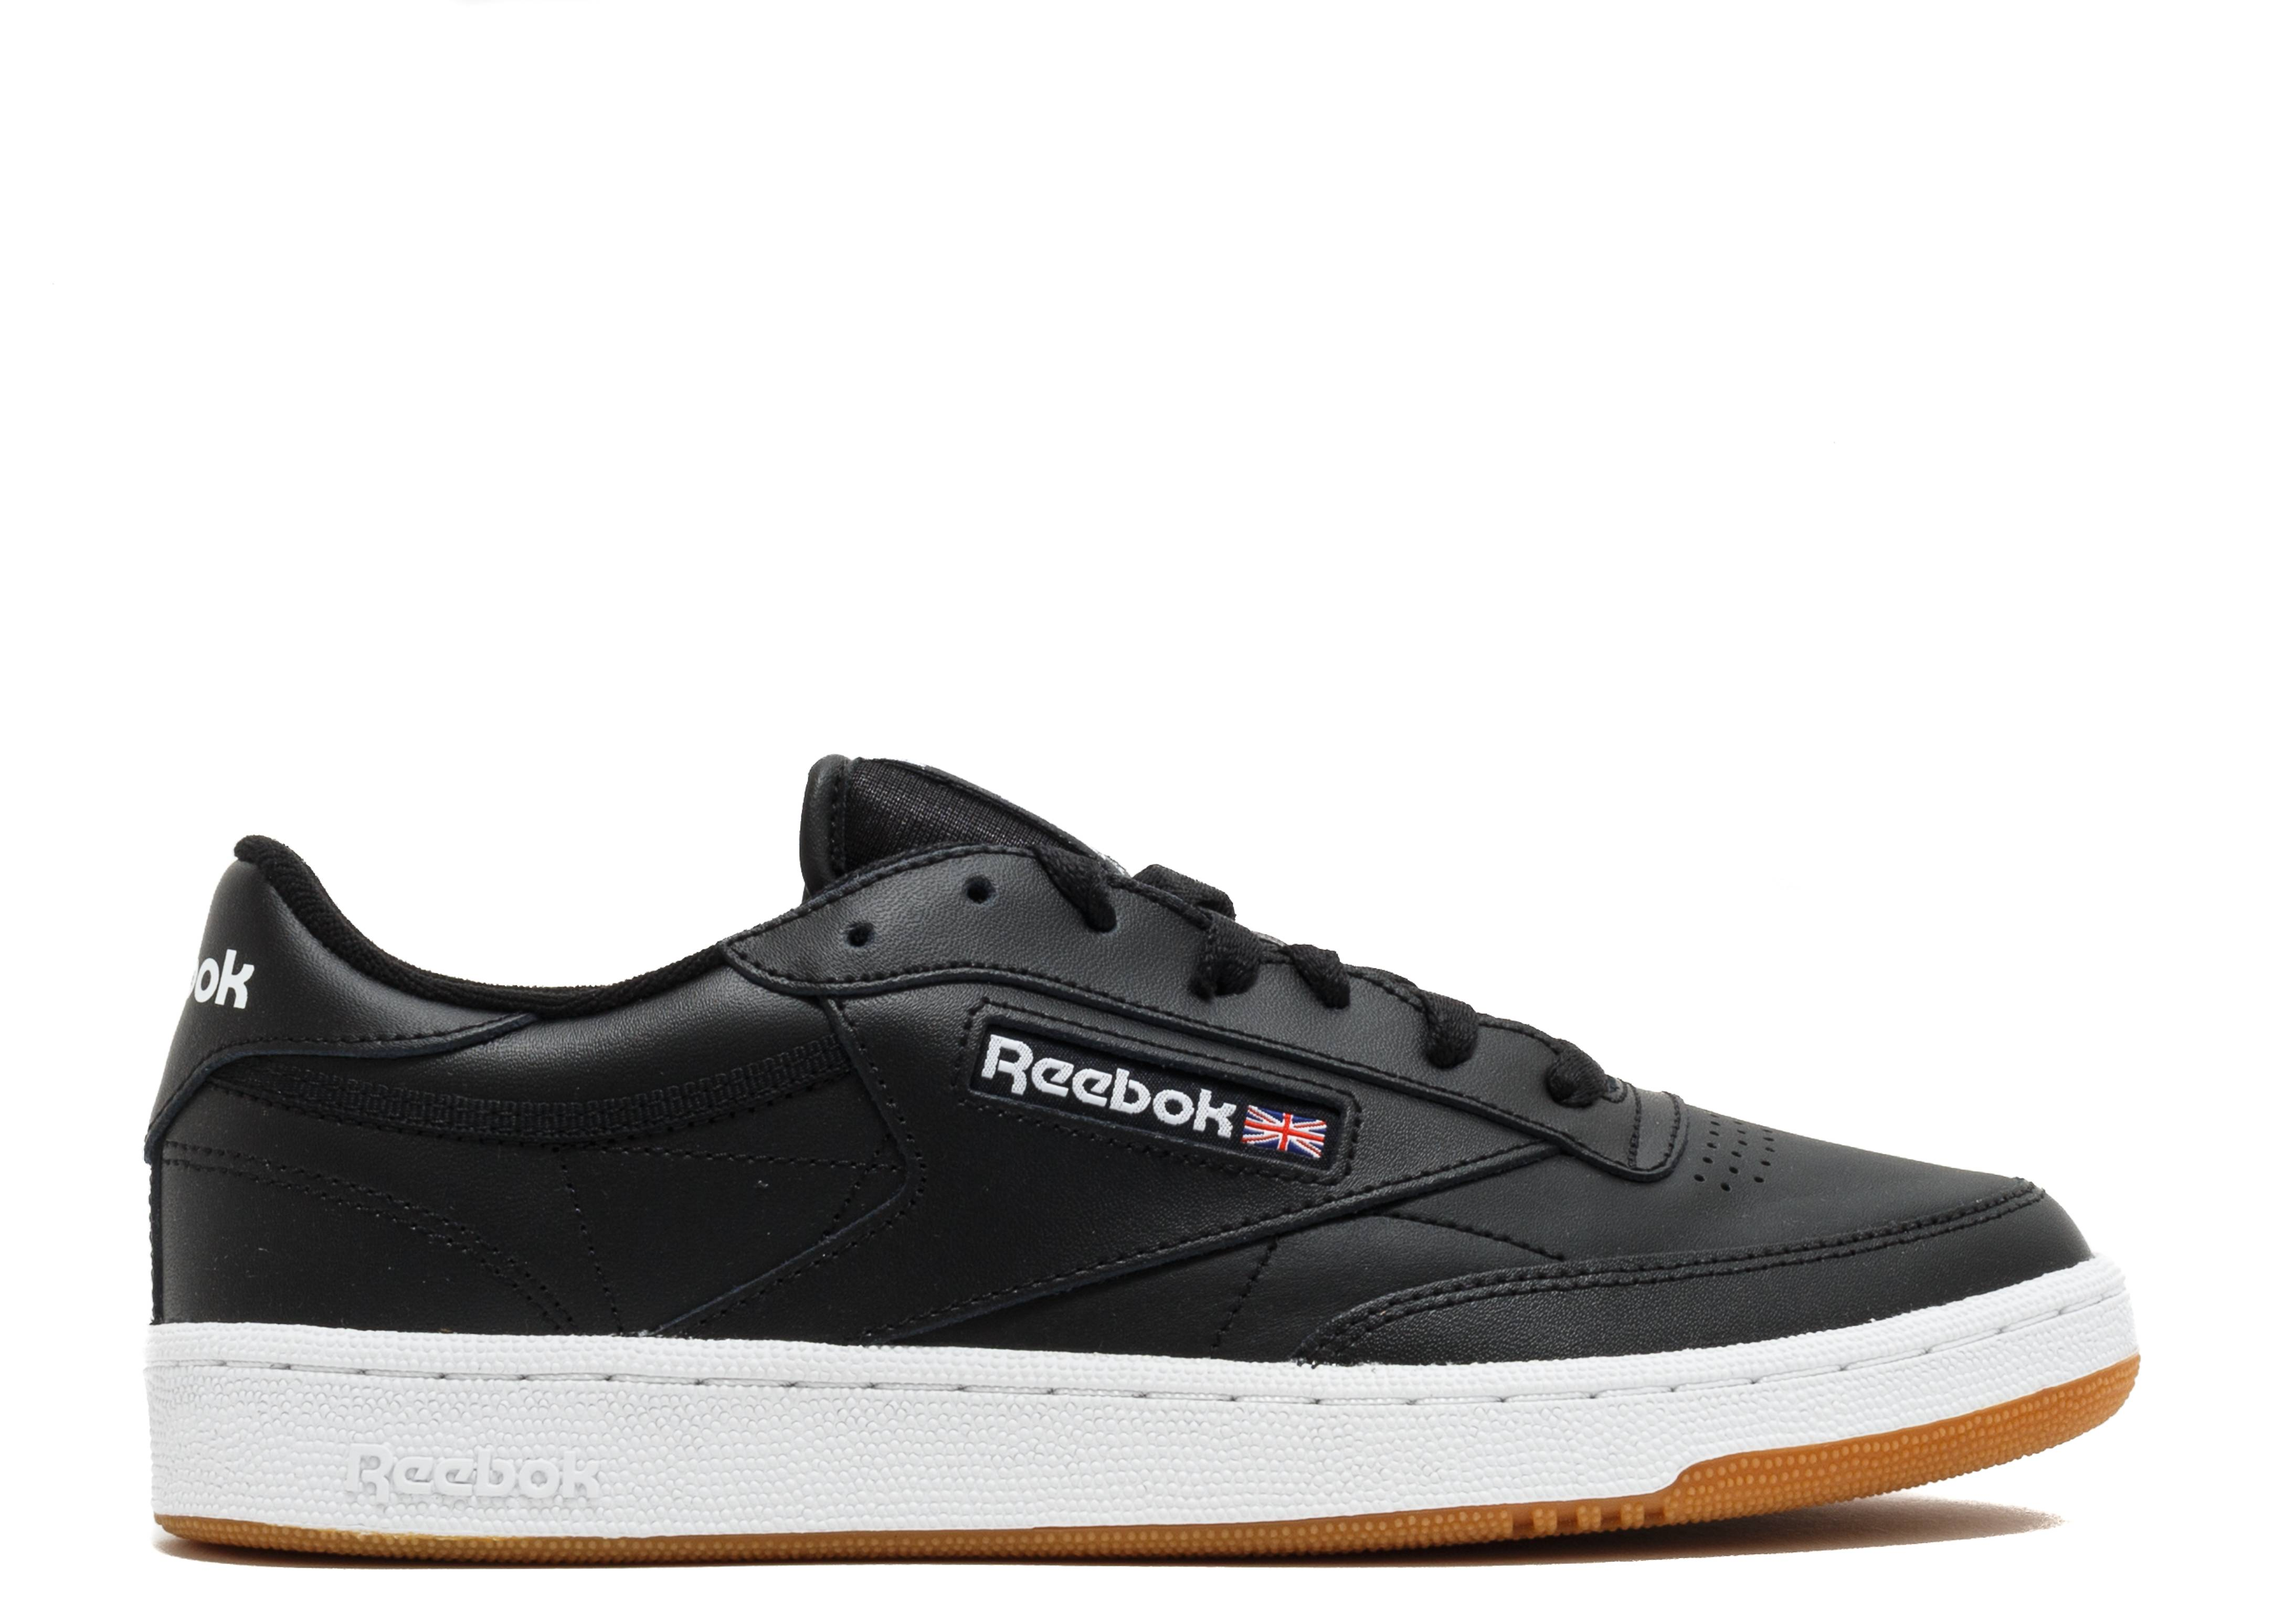 3b22785f64ade9 Club C 85 - Reebok - AR0458 - black white gum